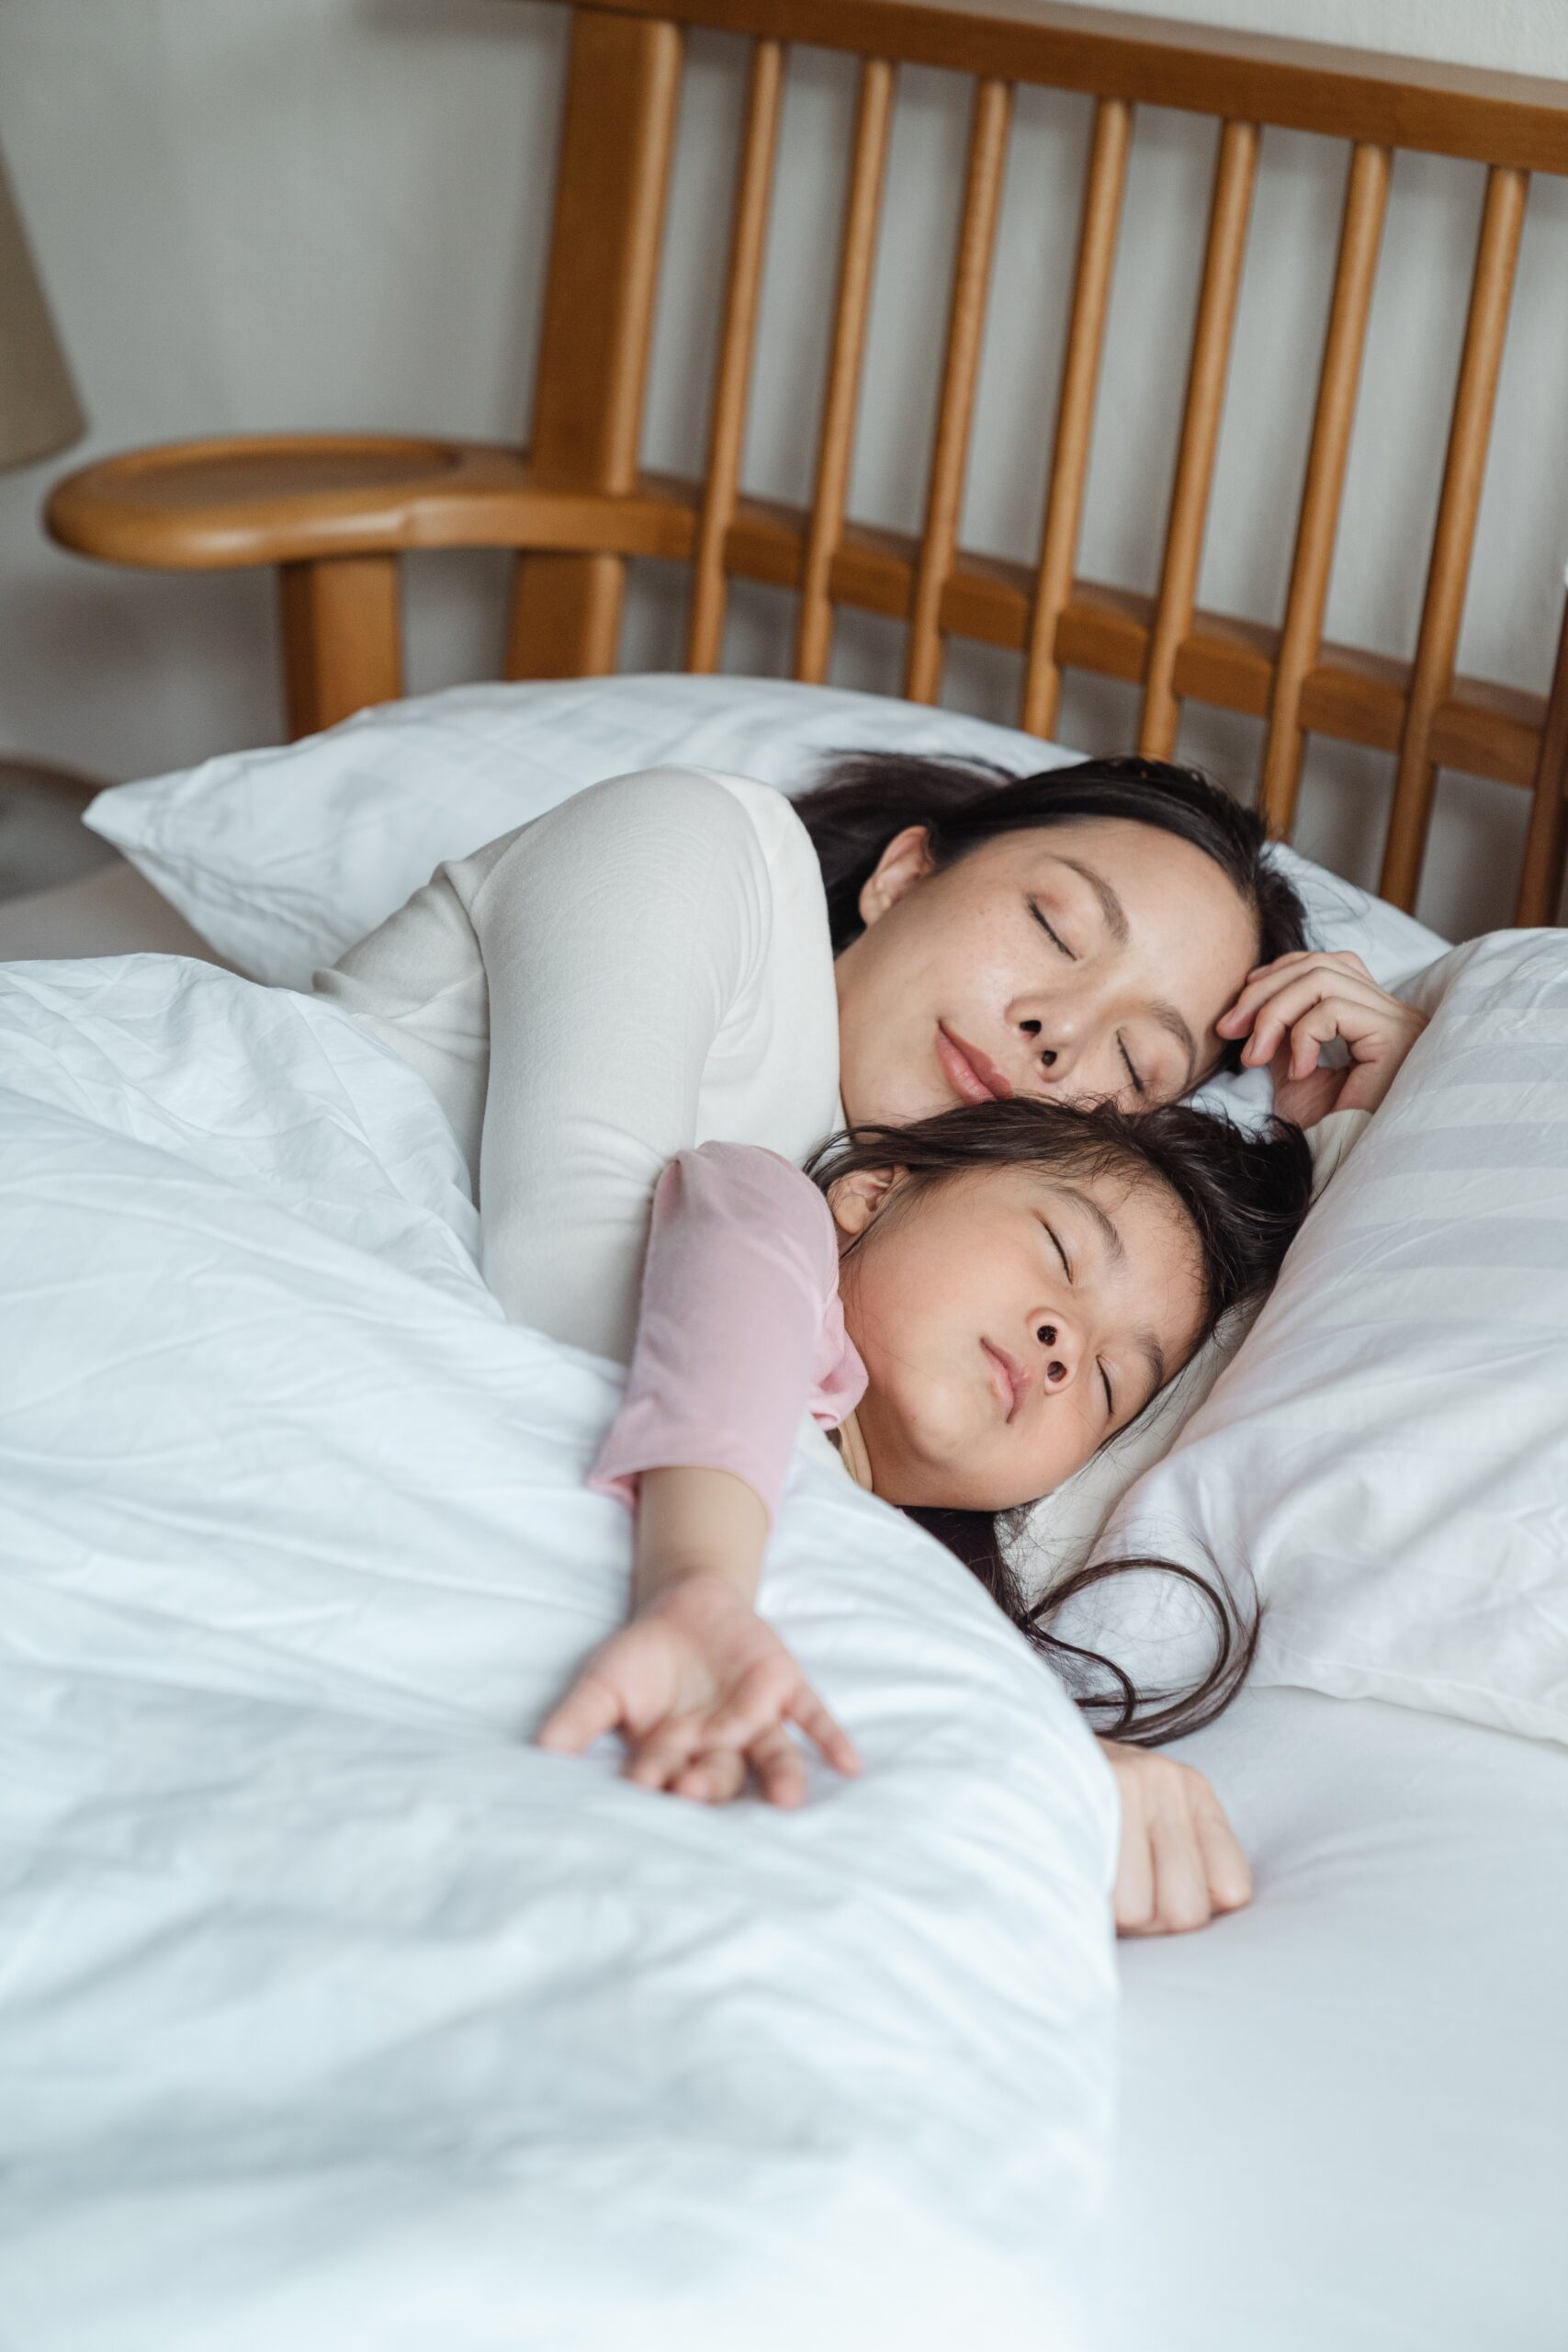 What To Do If Your Kids Have Trouble Sleeping During Quarantine